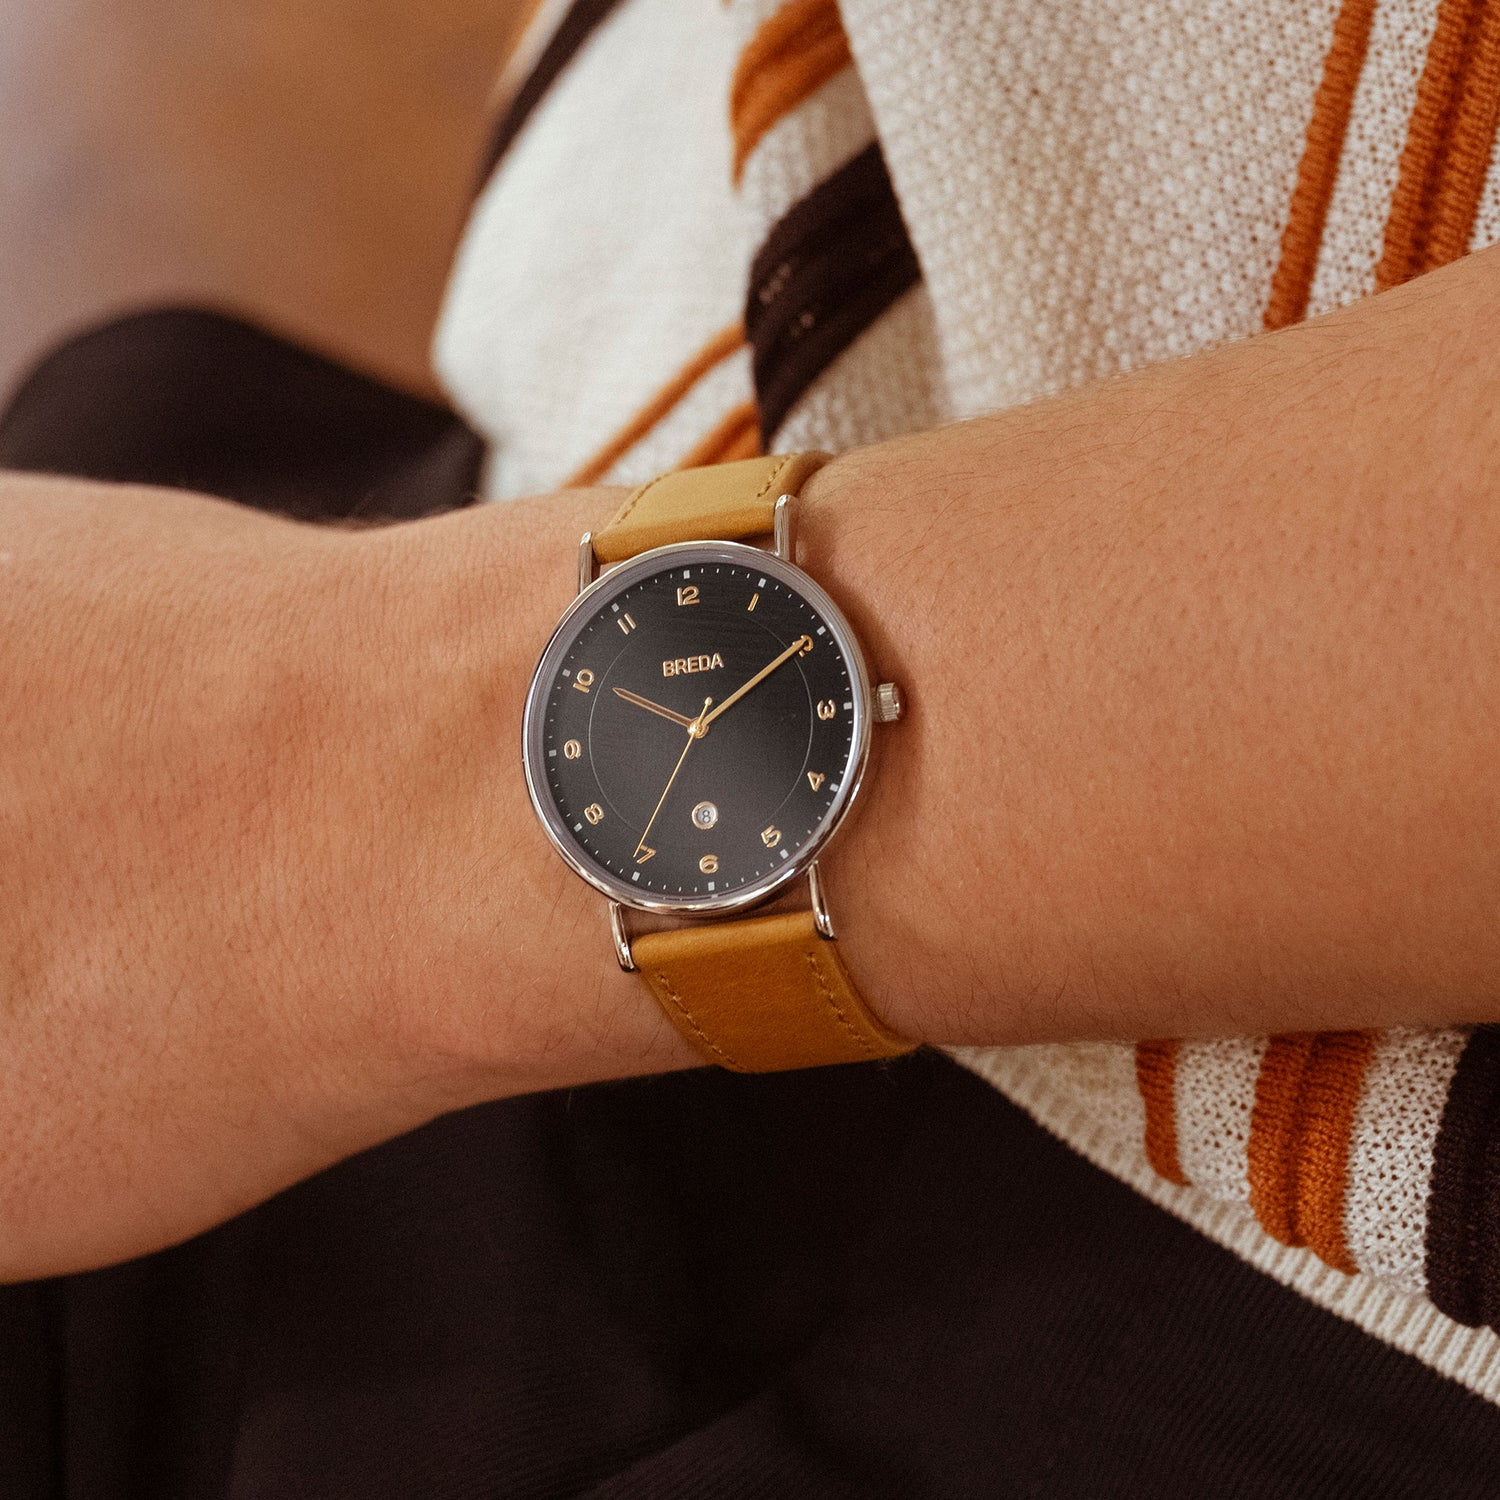 breda-pei-1739b-silver-brown-leather-watch-lifestyle